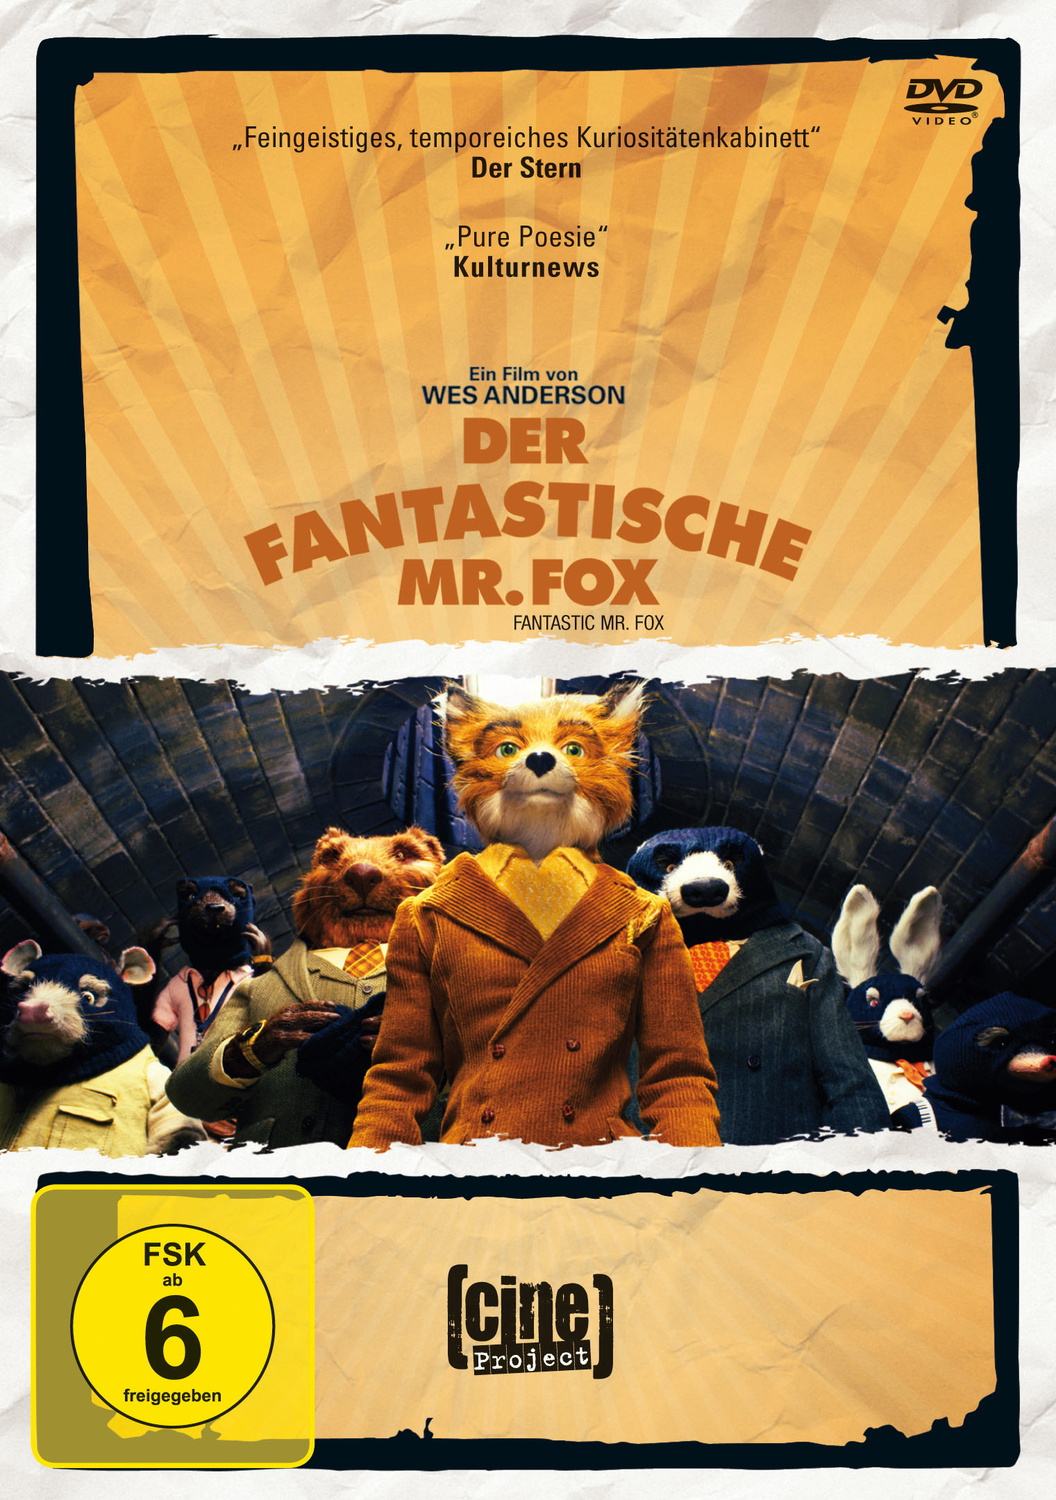 Der fantastische Mr. Fox (Cine Project)